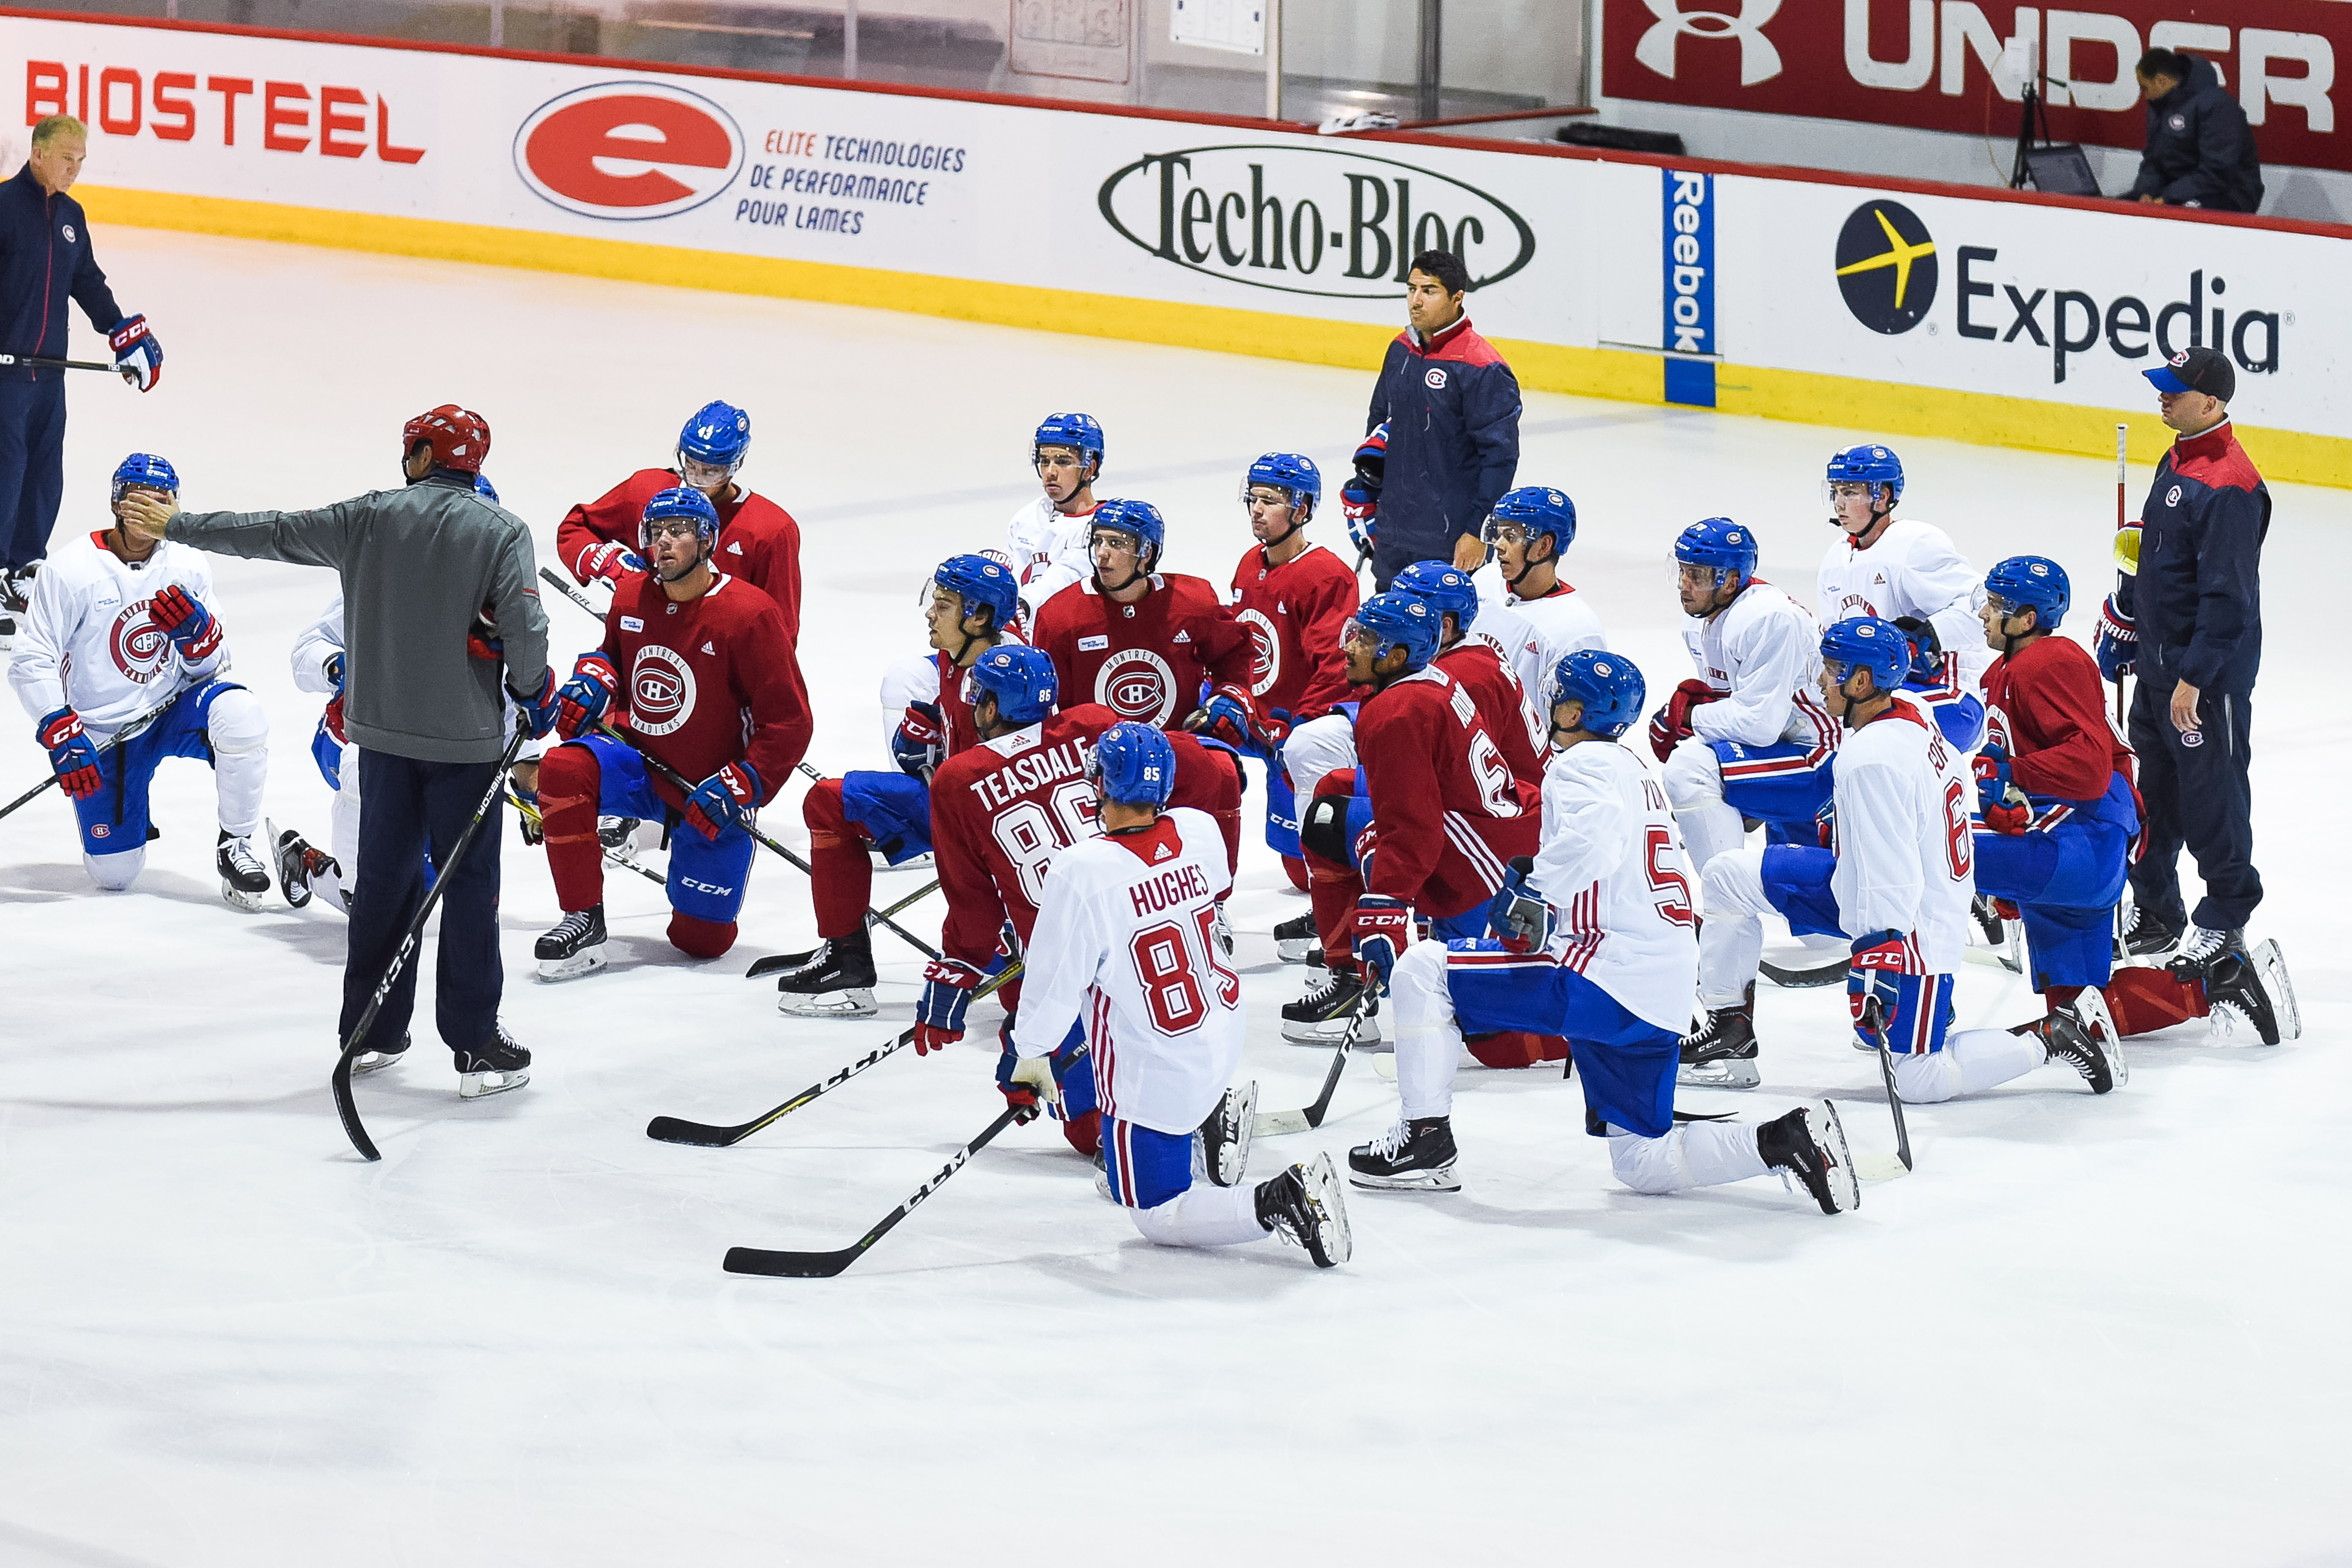 Montreal Canadiens Schedule, Roster, News, and Rumors | Eyes